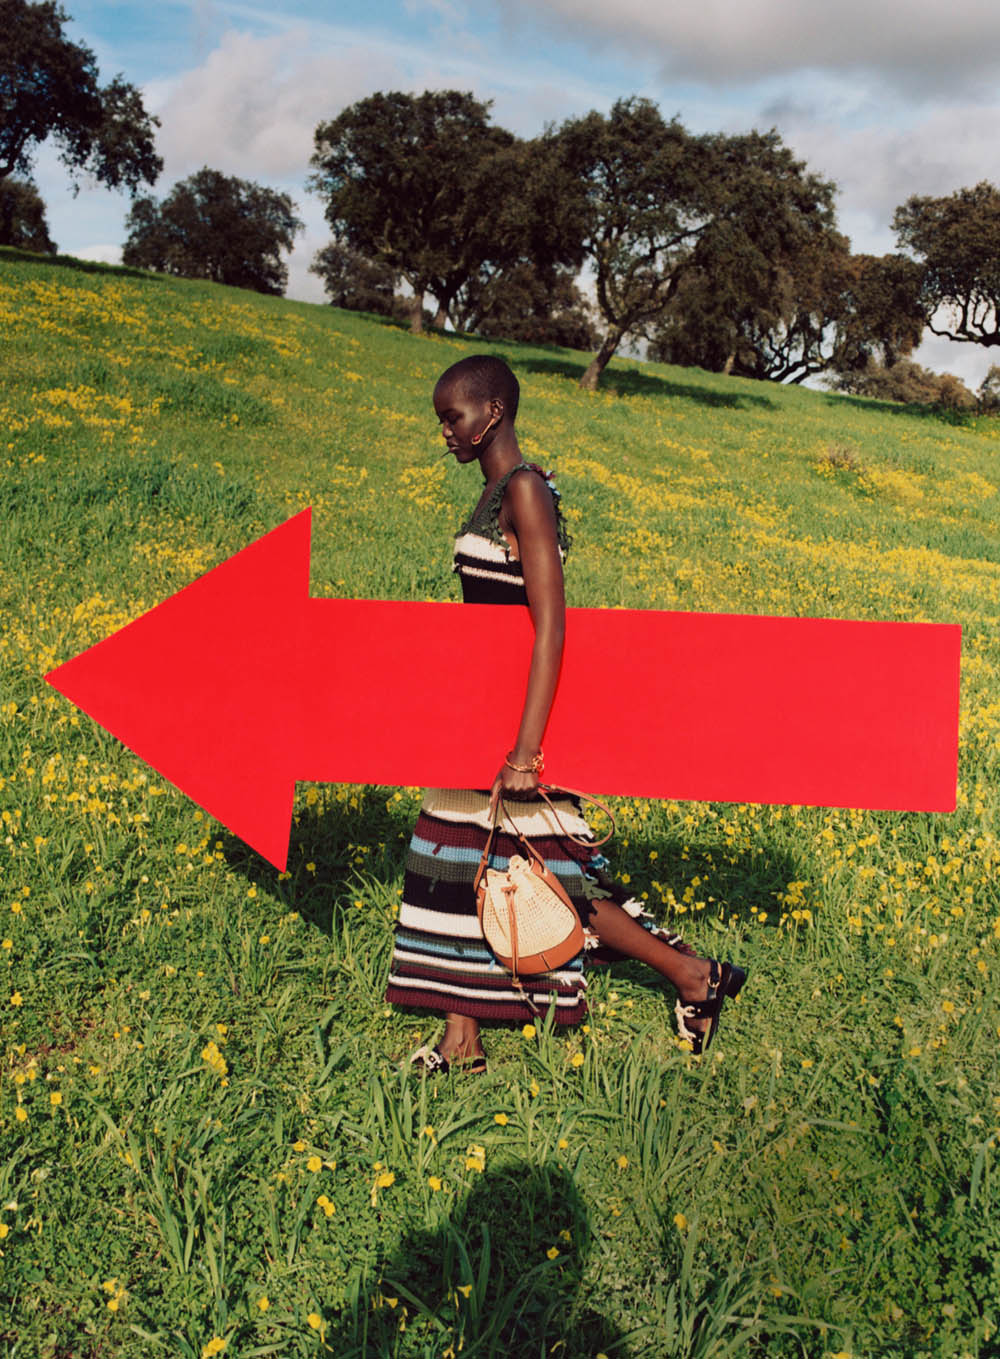 Adut Akech and Abby Champion by Angelo Pennetta for Vogue US April 2020